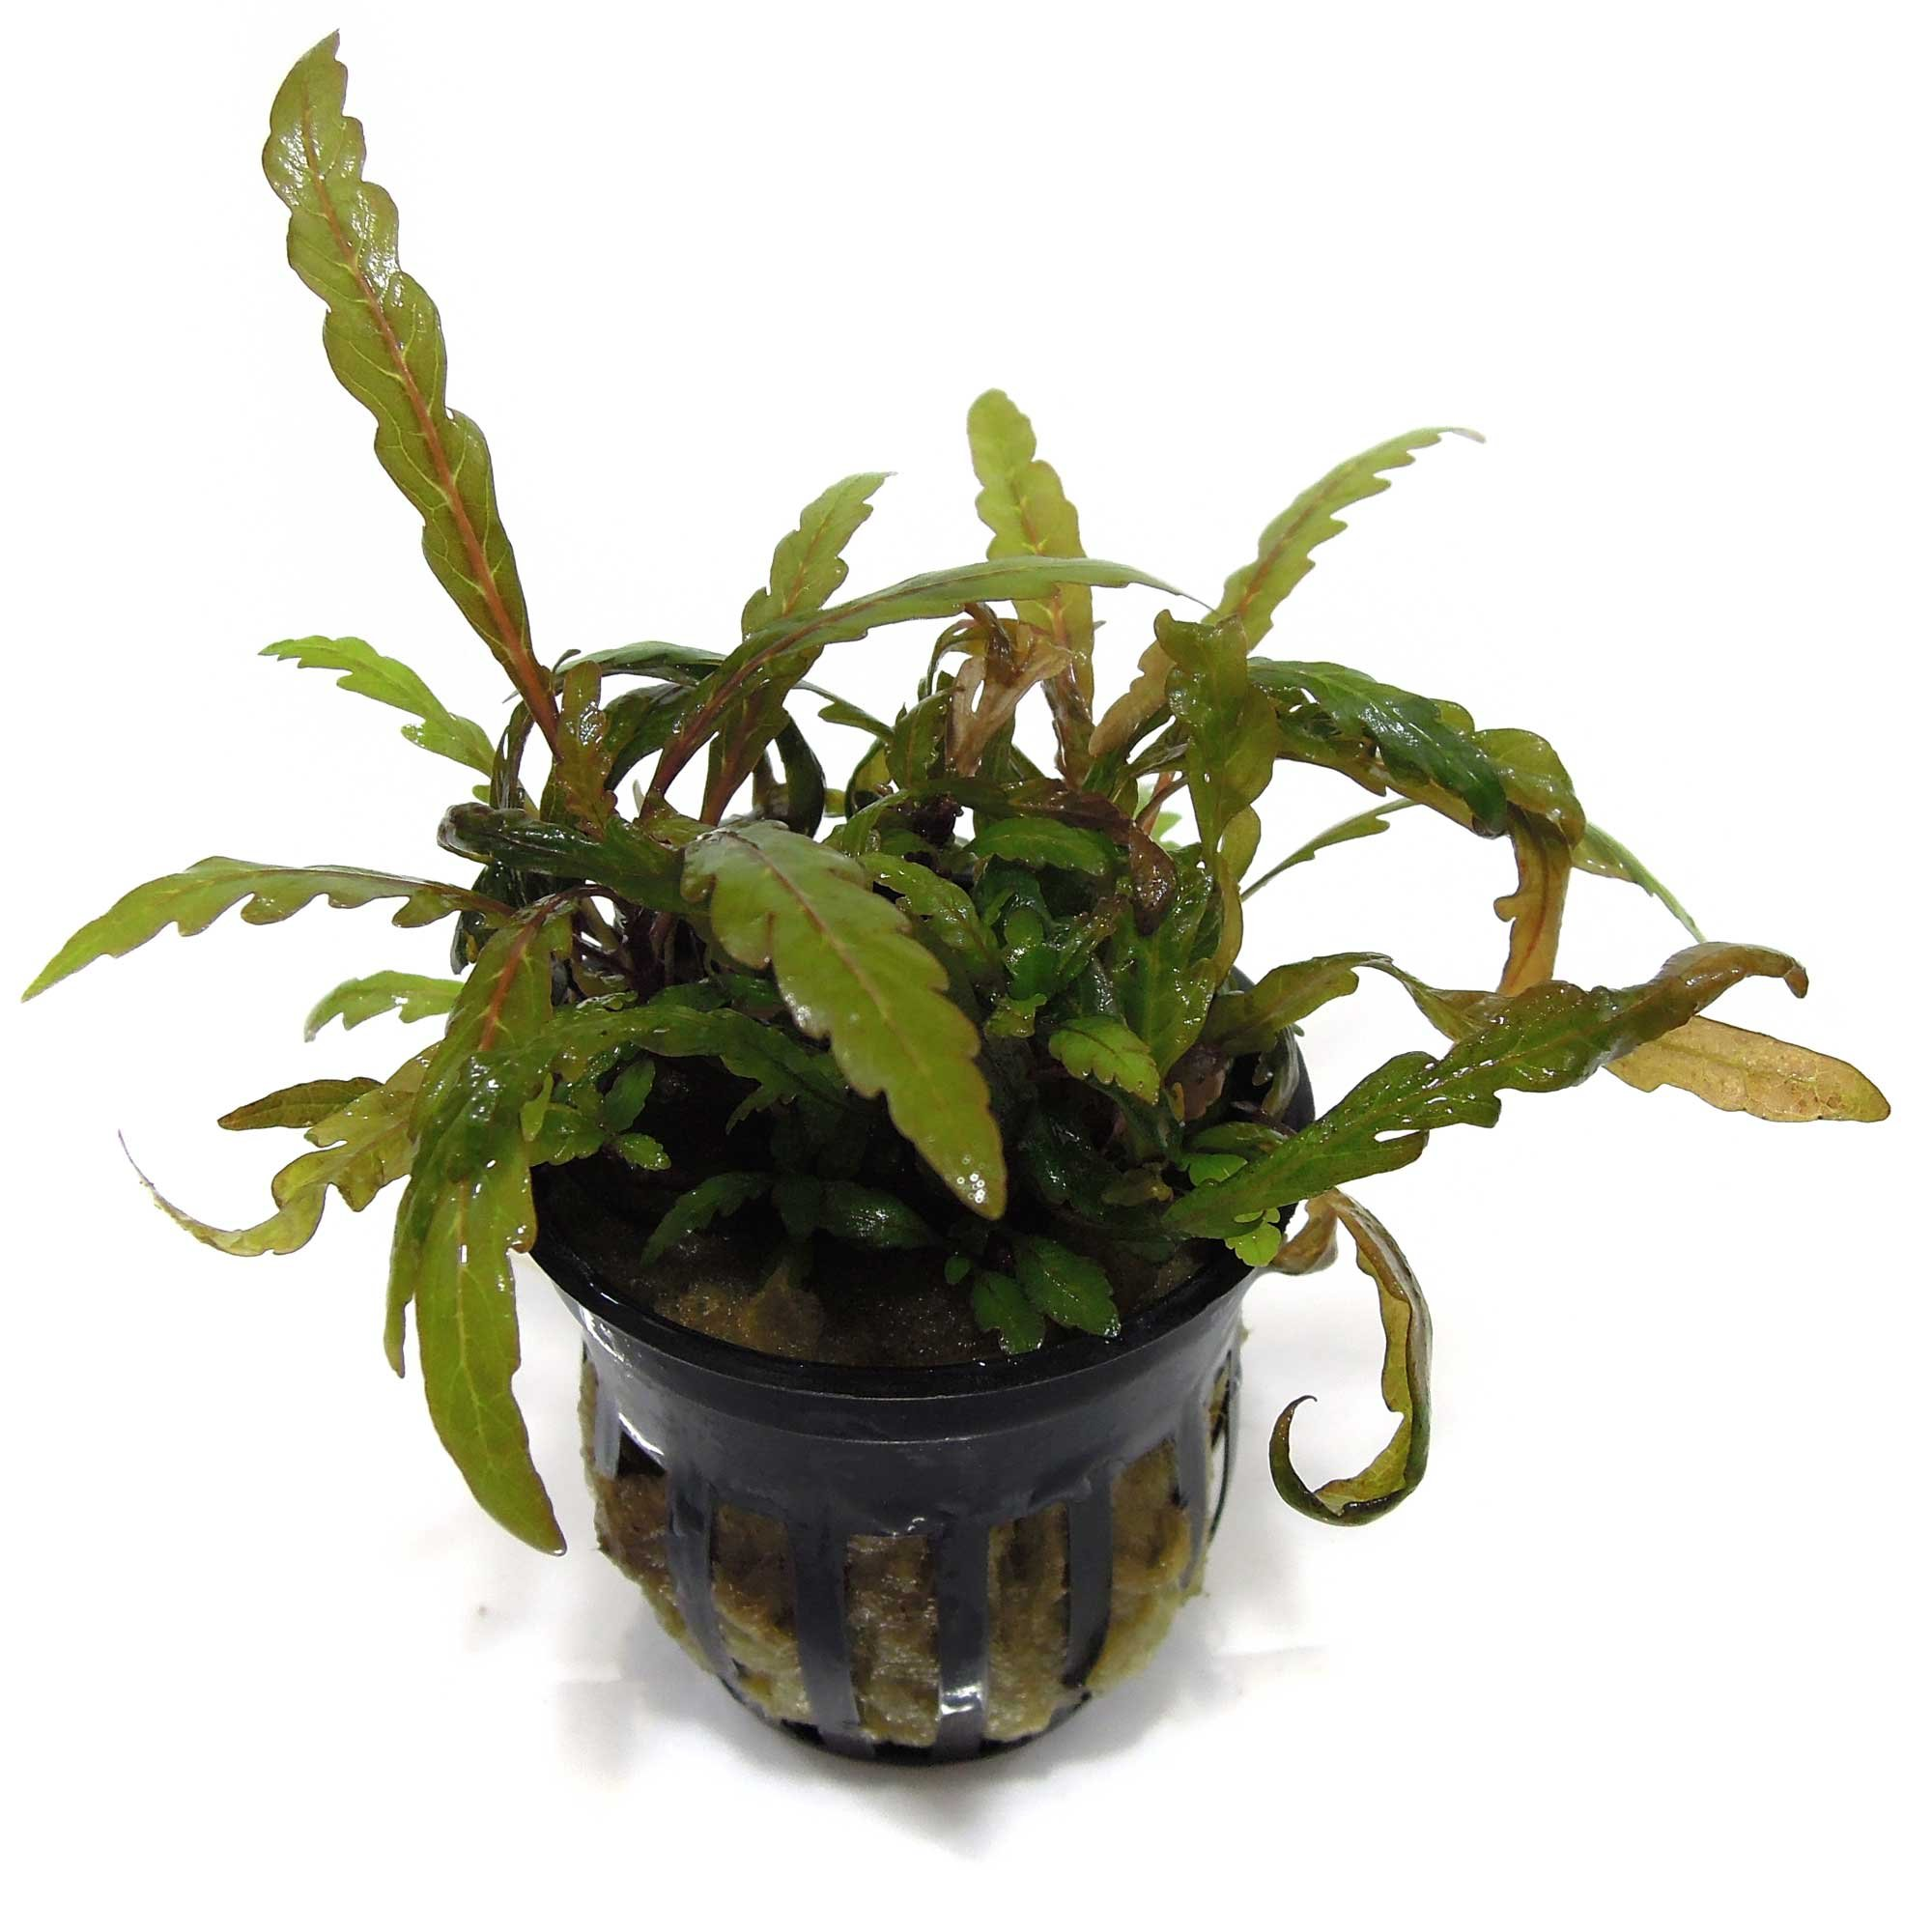 SubstrateSource Hygrophila pinnatifida Potted Live Aquarium Plant